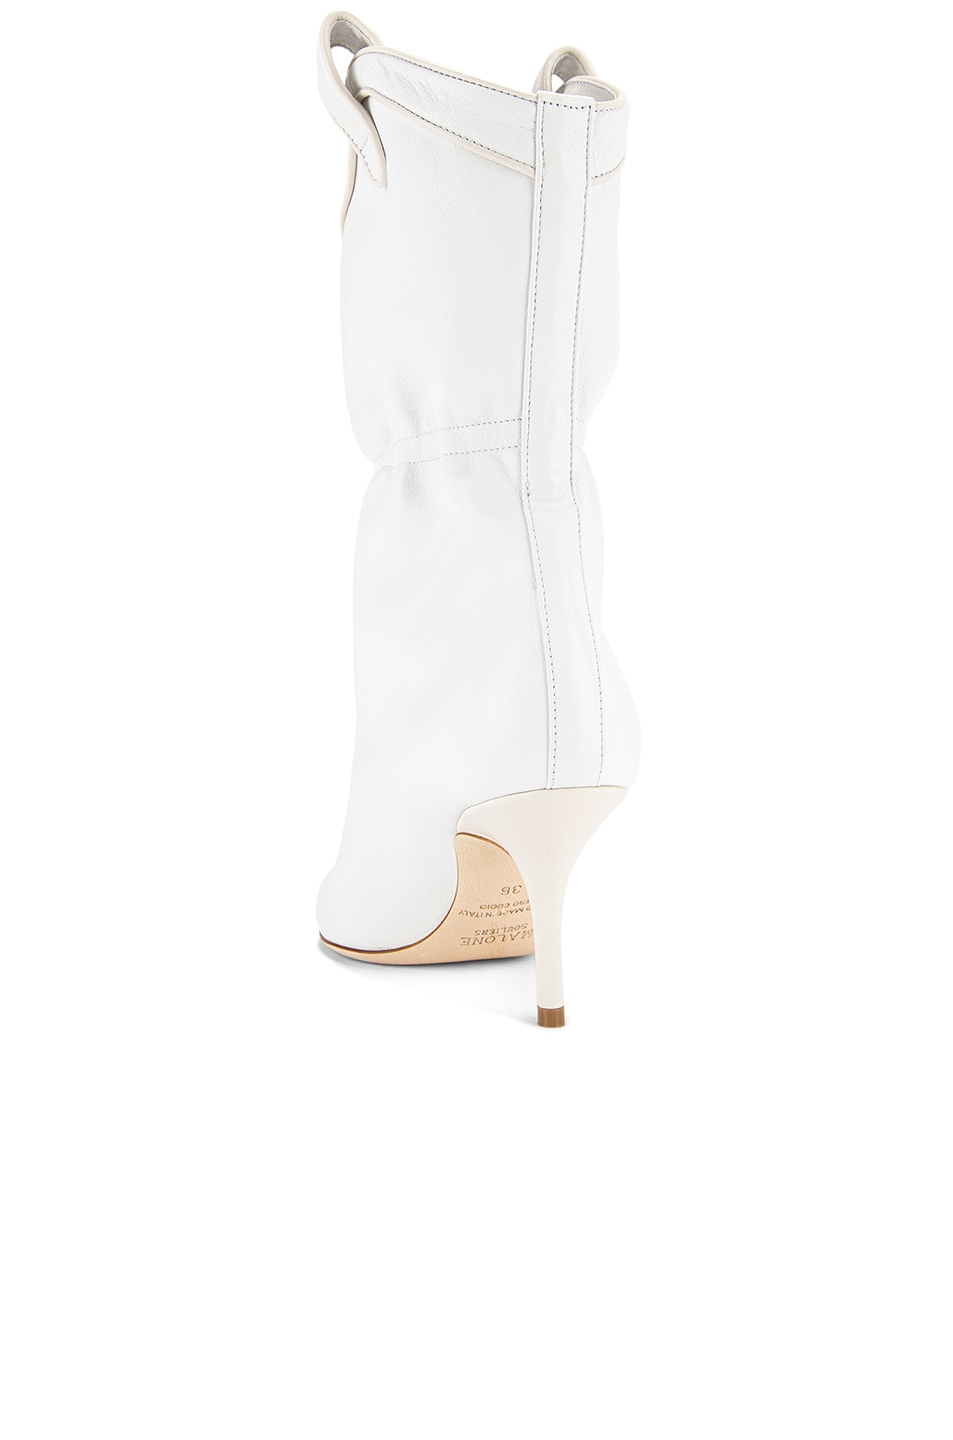 Image 3 of Malone Souliers Daisy MS 70 Boot in White & Cream